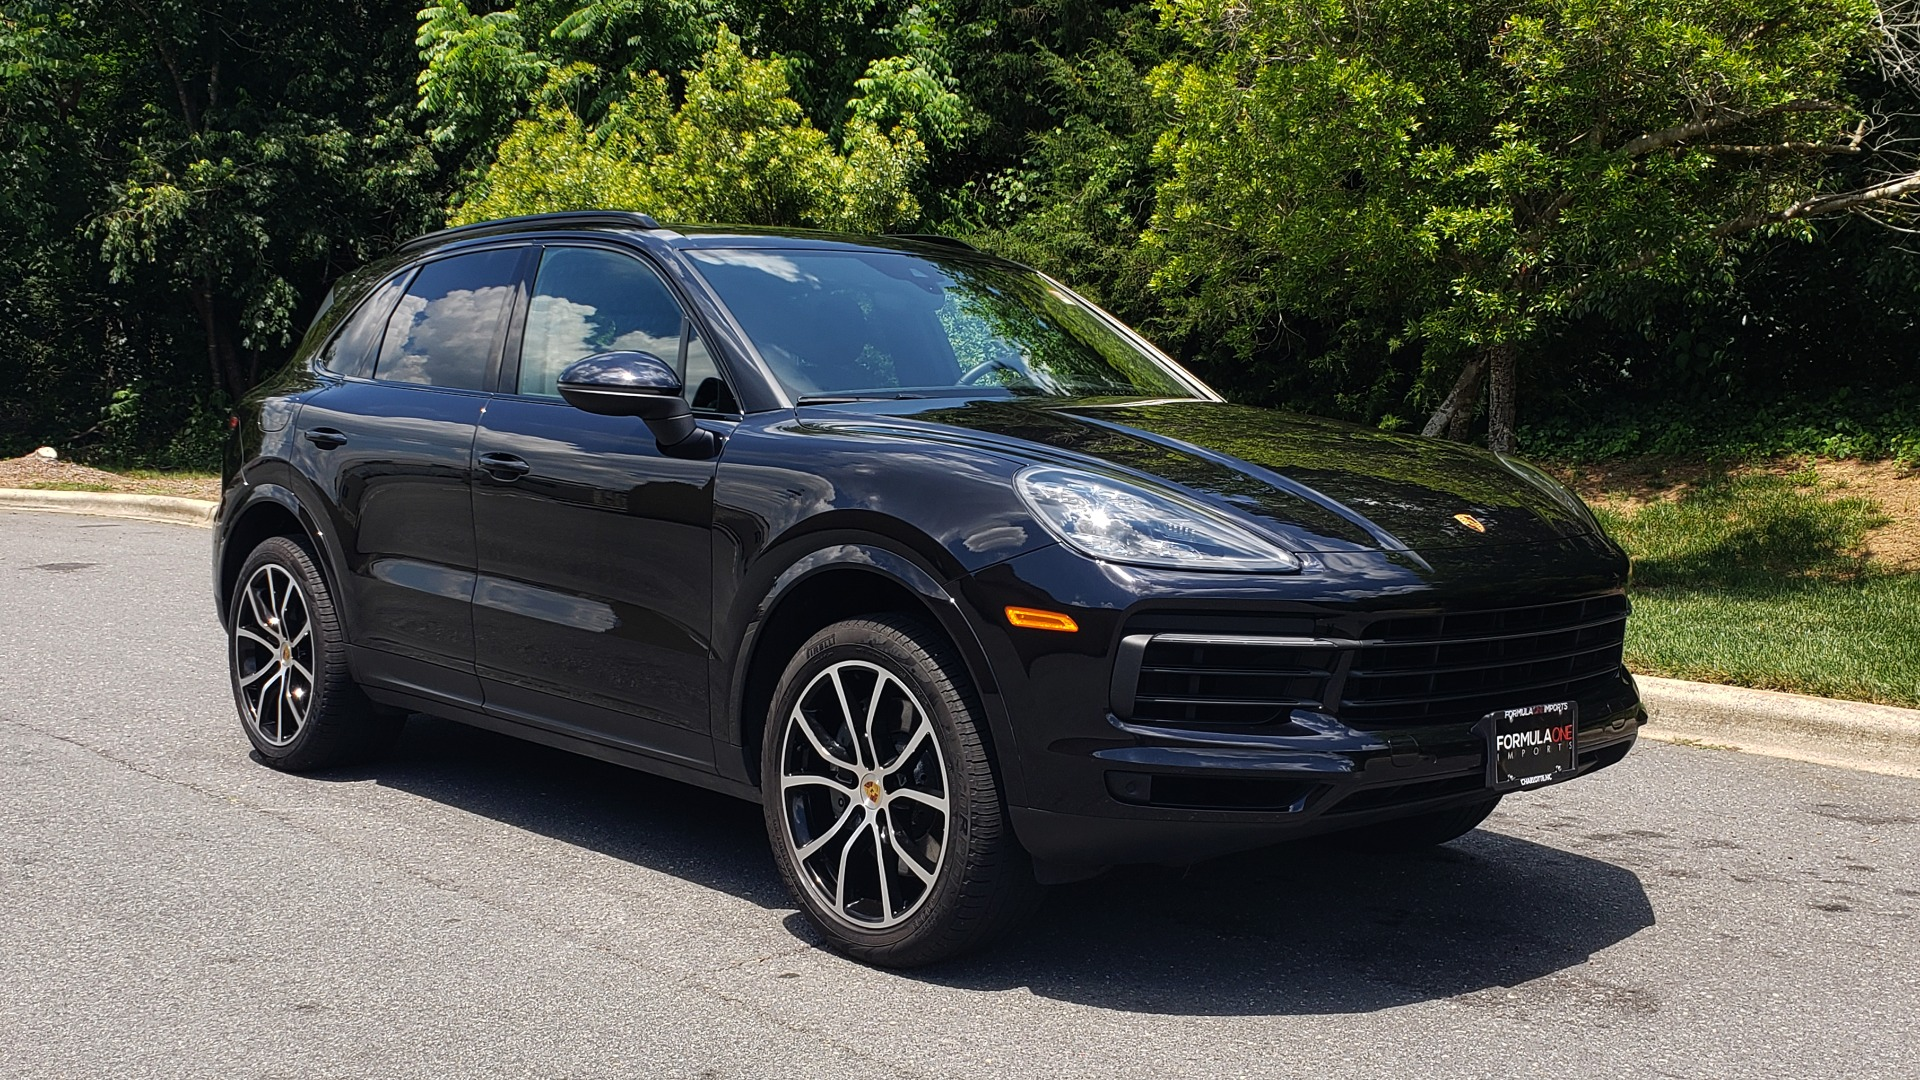 Used 2019 Porsche CAYENNE S AWD / NAV / SUNROOF / BOSE / REARVIEW / LOW MILES for sale Sold at Formula Imports in Charlotte NC 28227 11